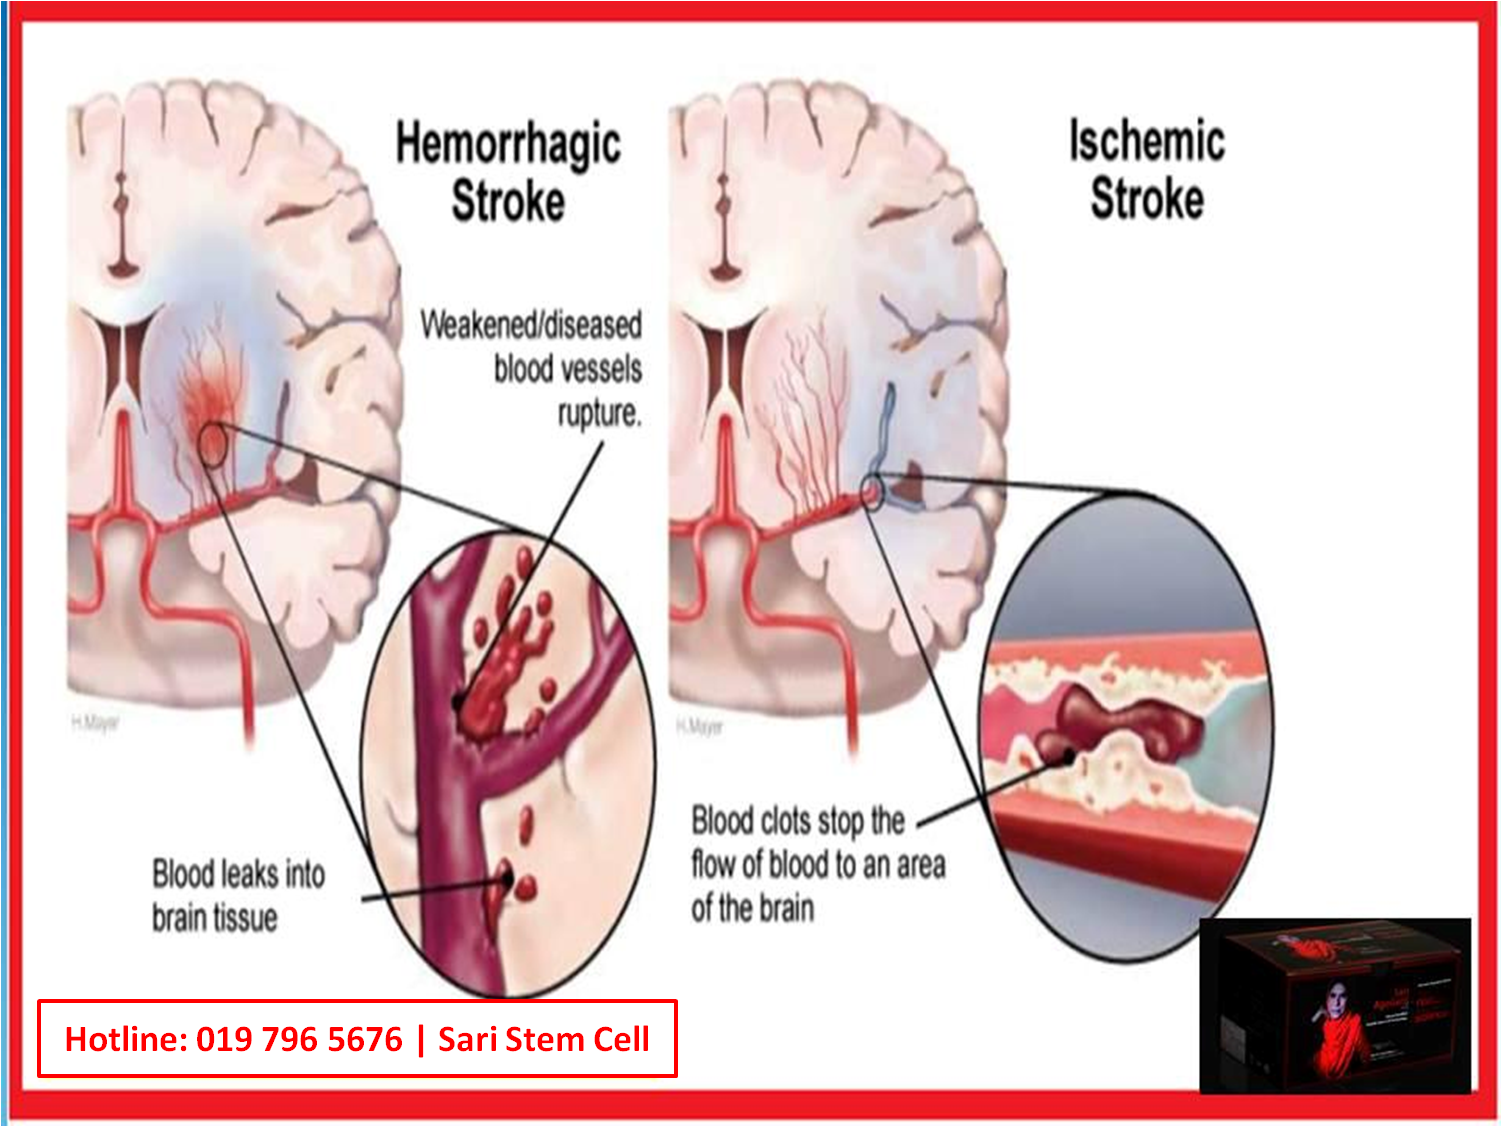 post stroke dating The process of recovery after hemiplegia  year after the stroke the relative weighting of th e variou s section could certainly hav been done differently.